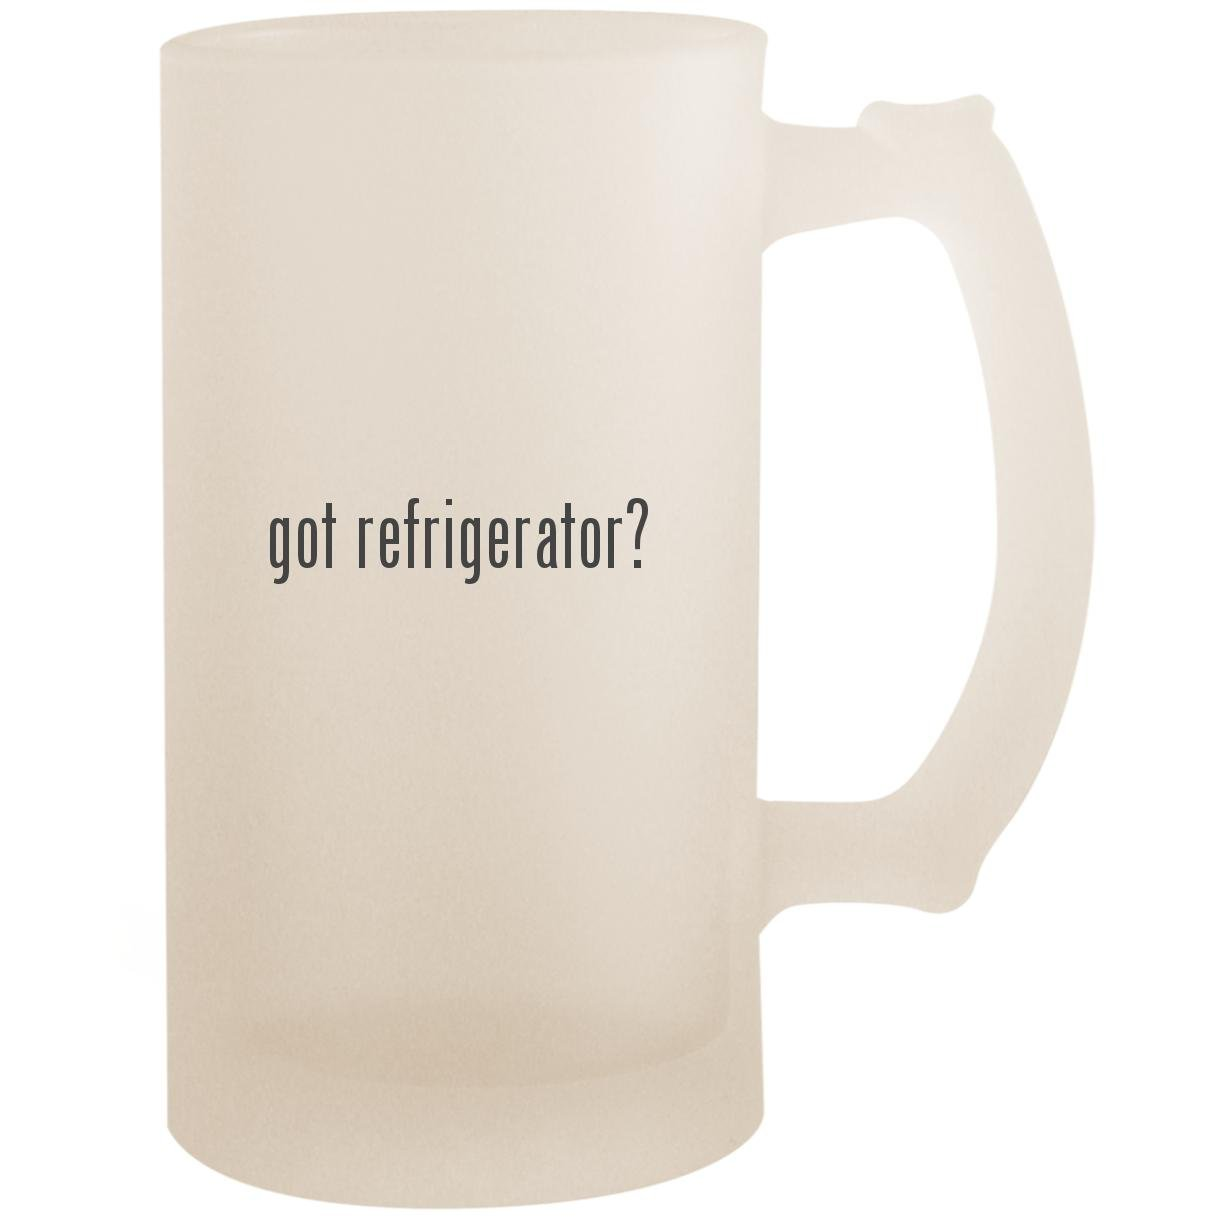 got refrigerator? - 16oz Glass Frosted Beer Stein Mug, Frosted